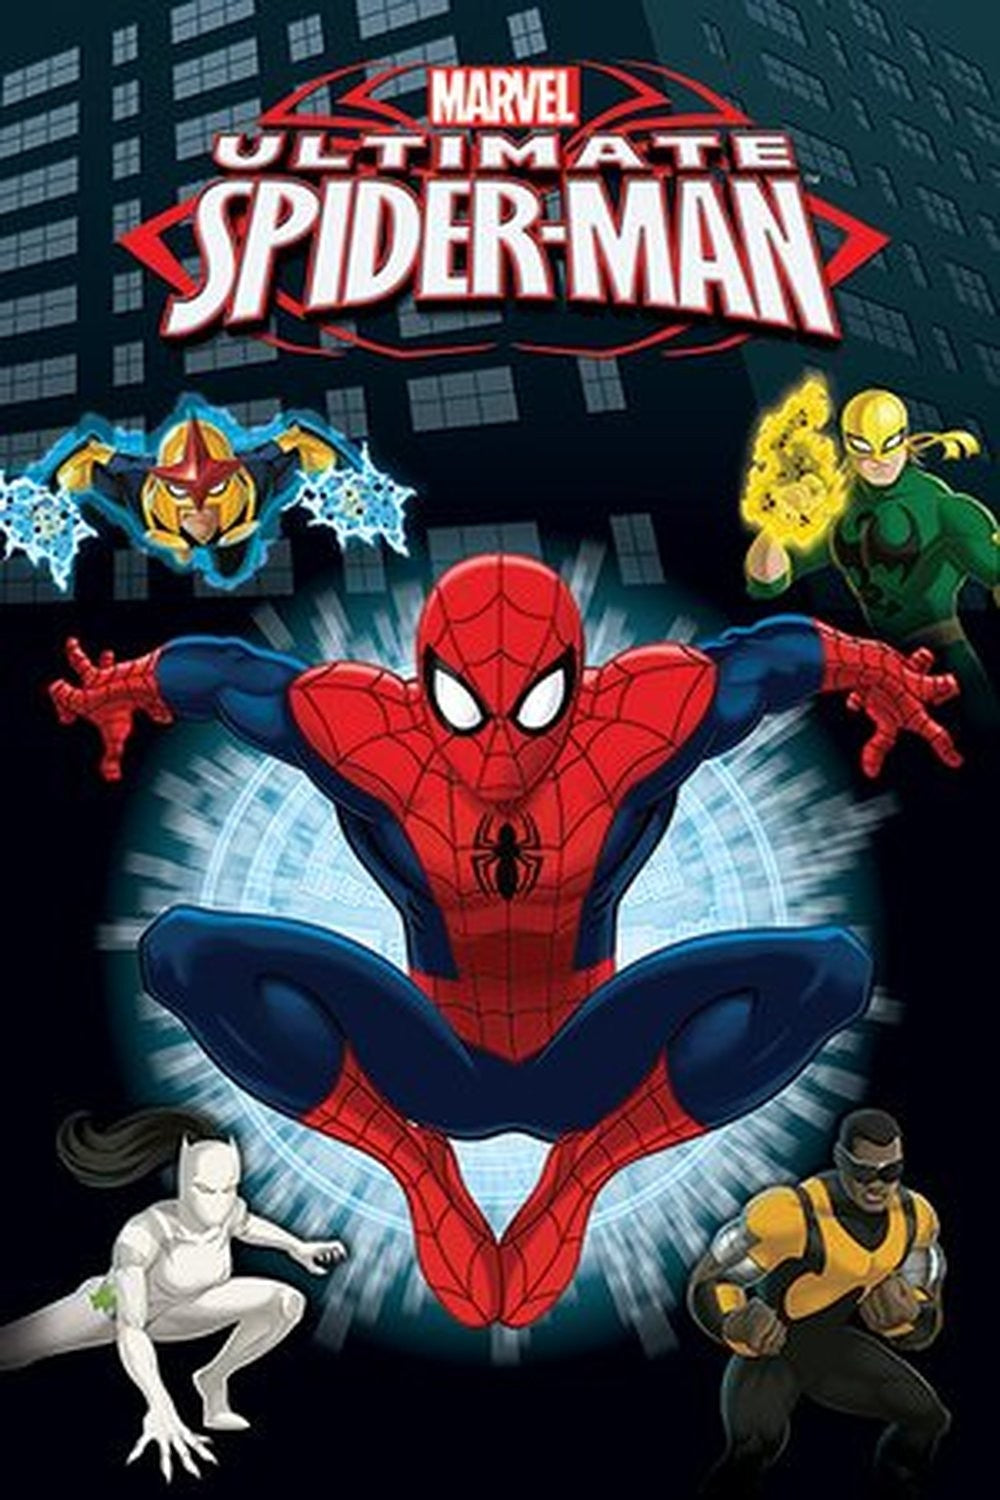 Ultimate Spider Man Is An Animated TV Series Based On The Comic Books Which Alternate Universe Where A Teenager